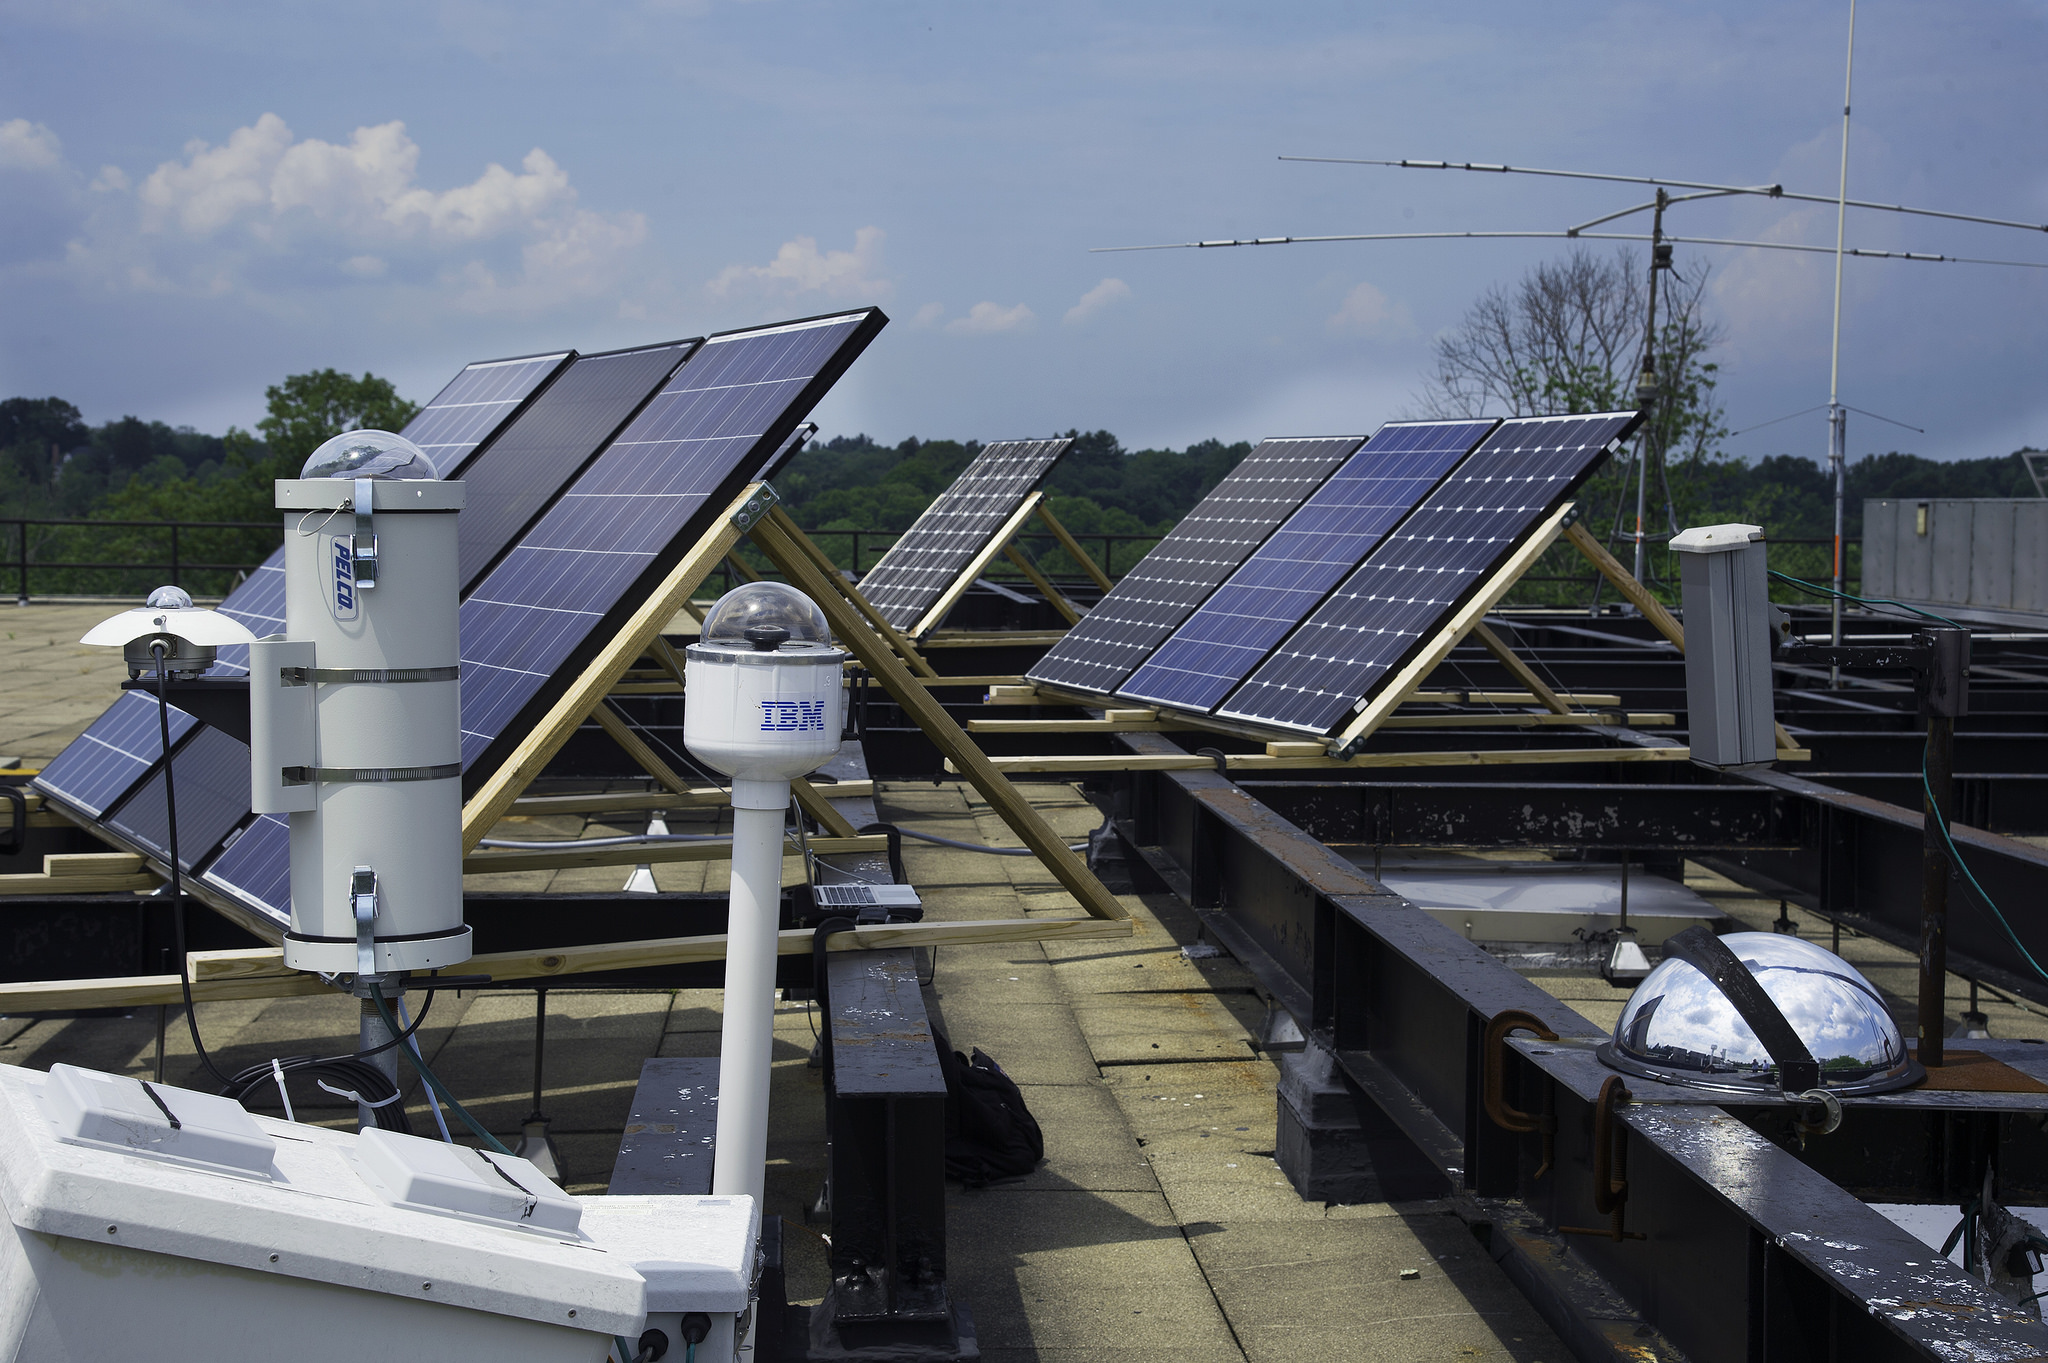 Three generations of cloud cameras installed on the roof of IBM labs used for IBM's solar forecasting technology.